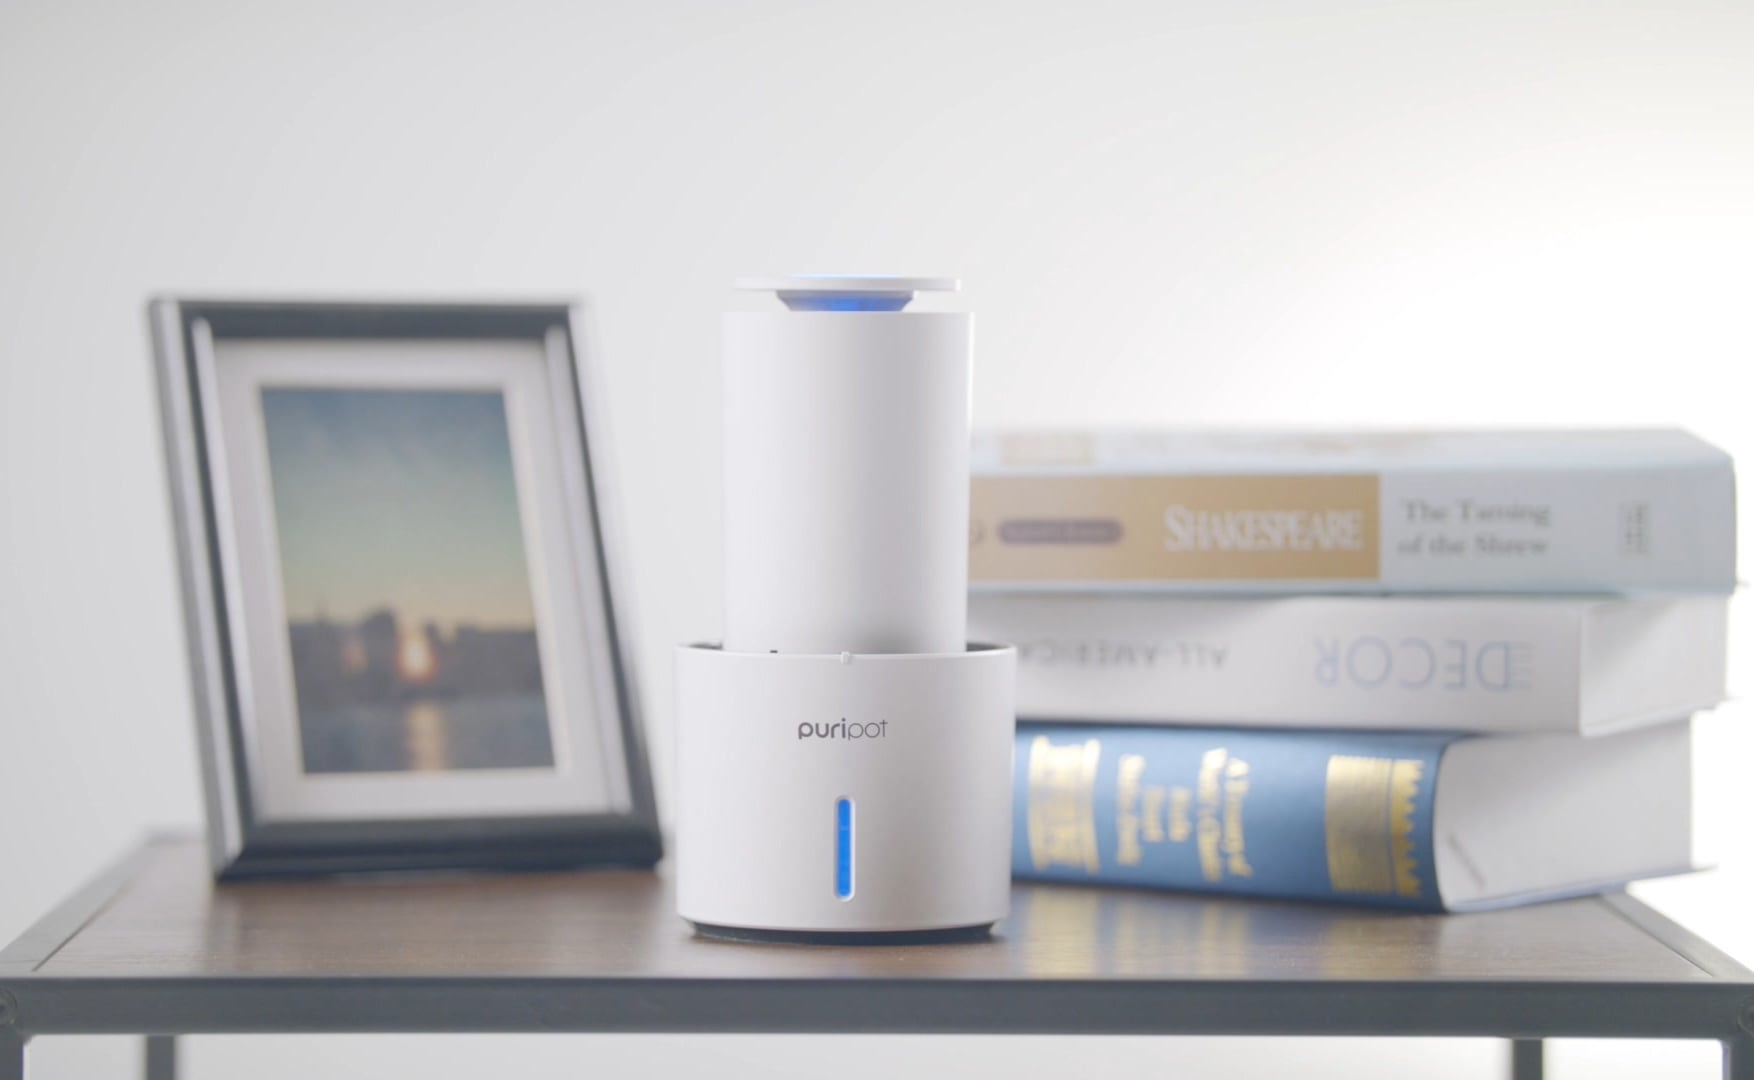 puripot P1N All-In-One Personal IoT Air Purifier uses eco-friendly, filter-free photocatalyst technology